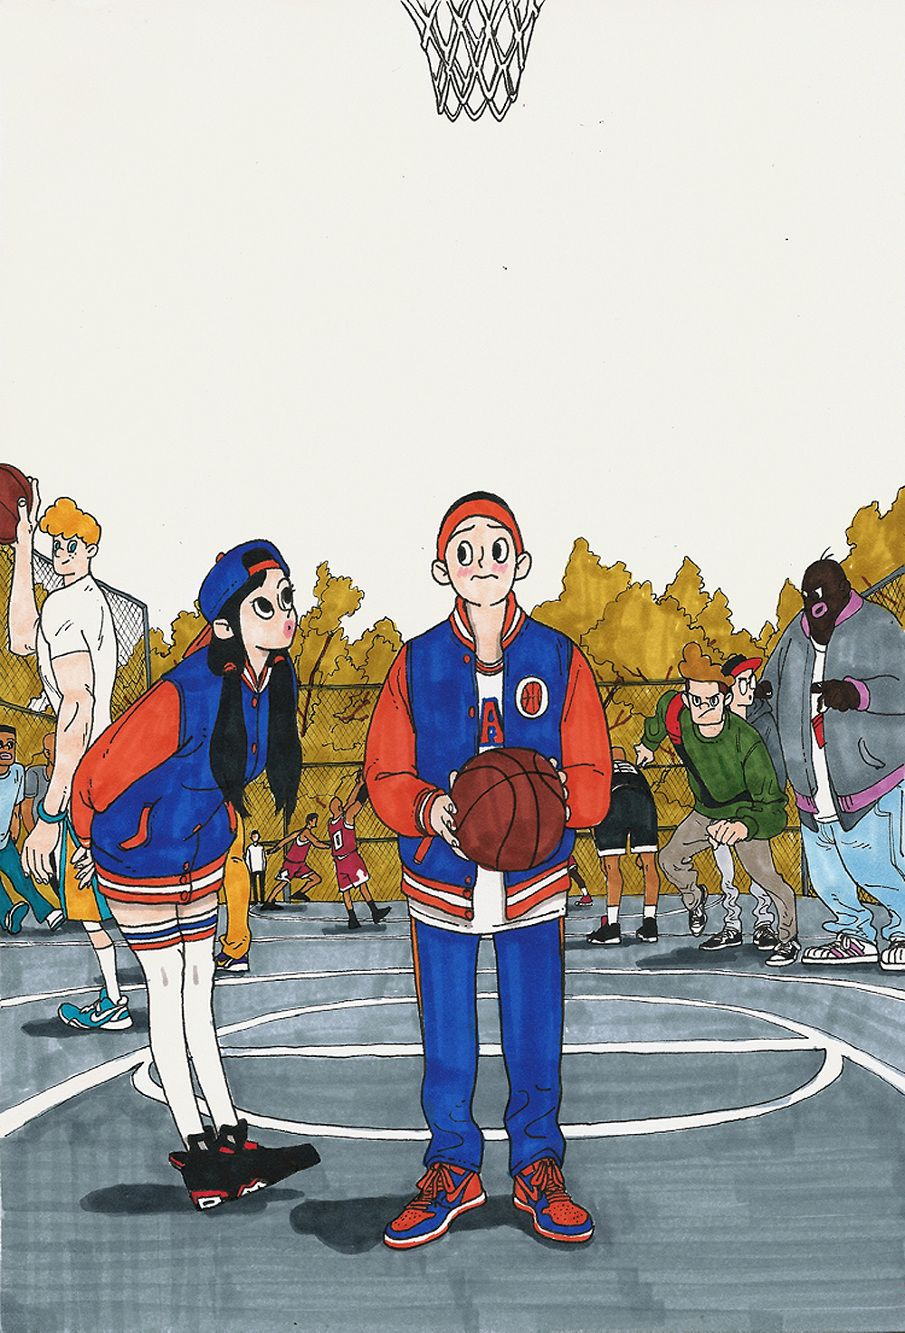 Basketball boy & girl - Kim Jungyoun | Arts | Illustration ...